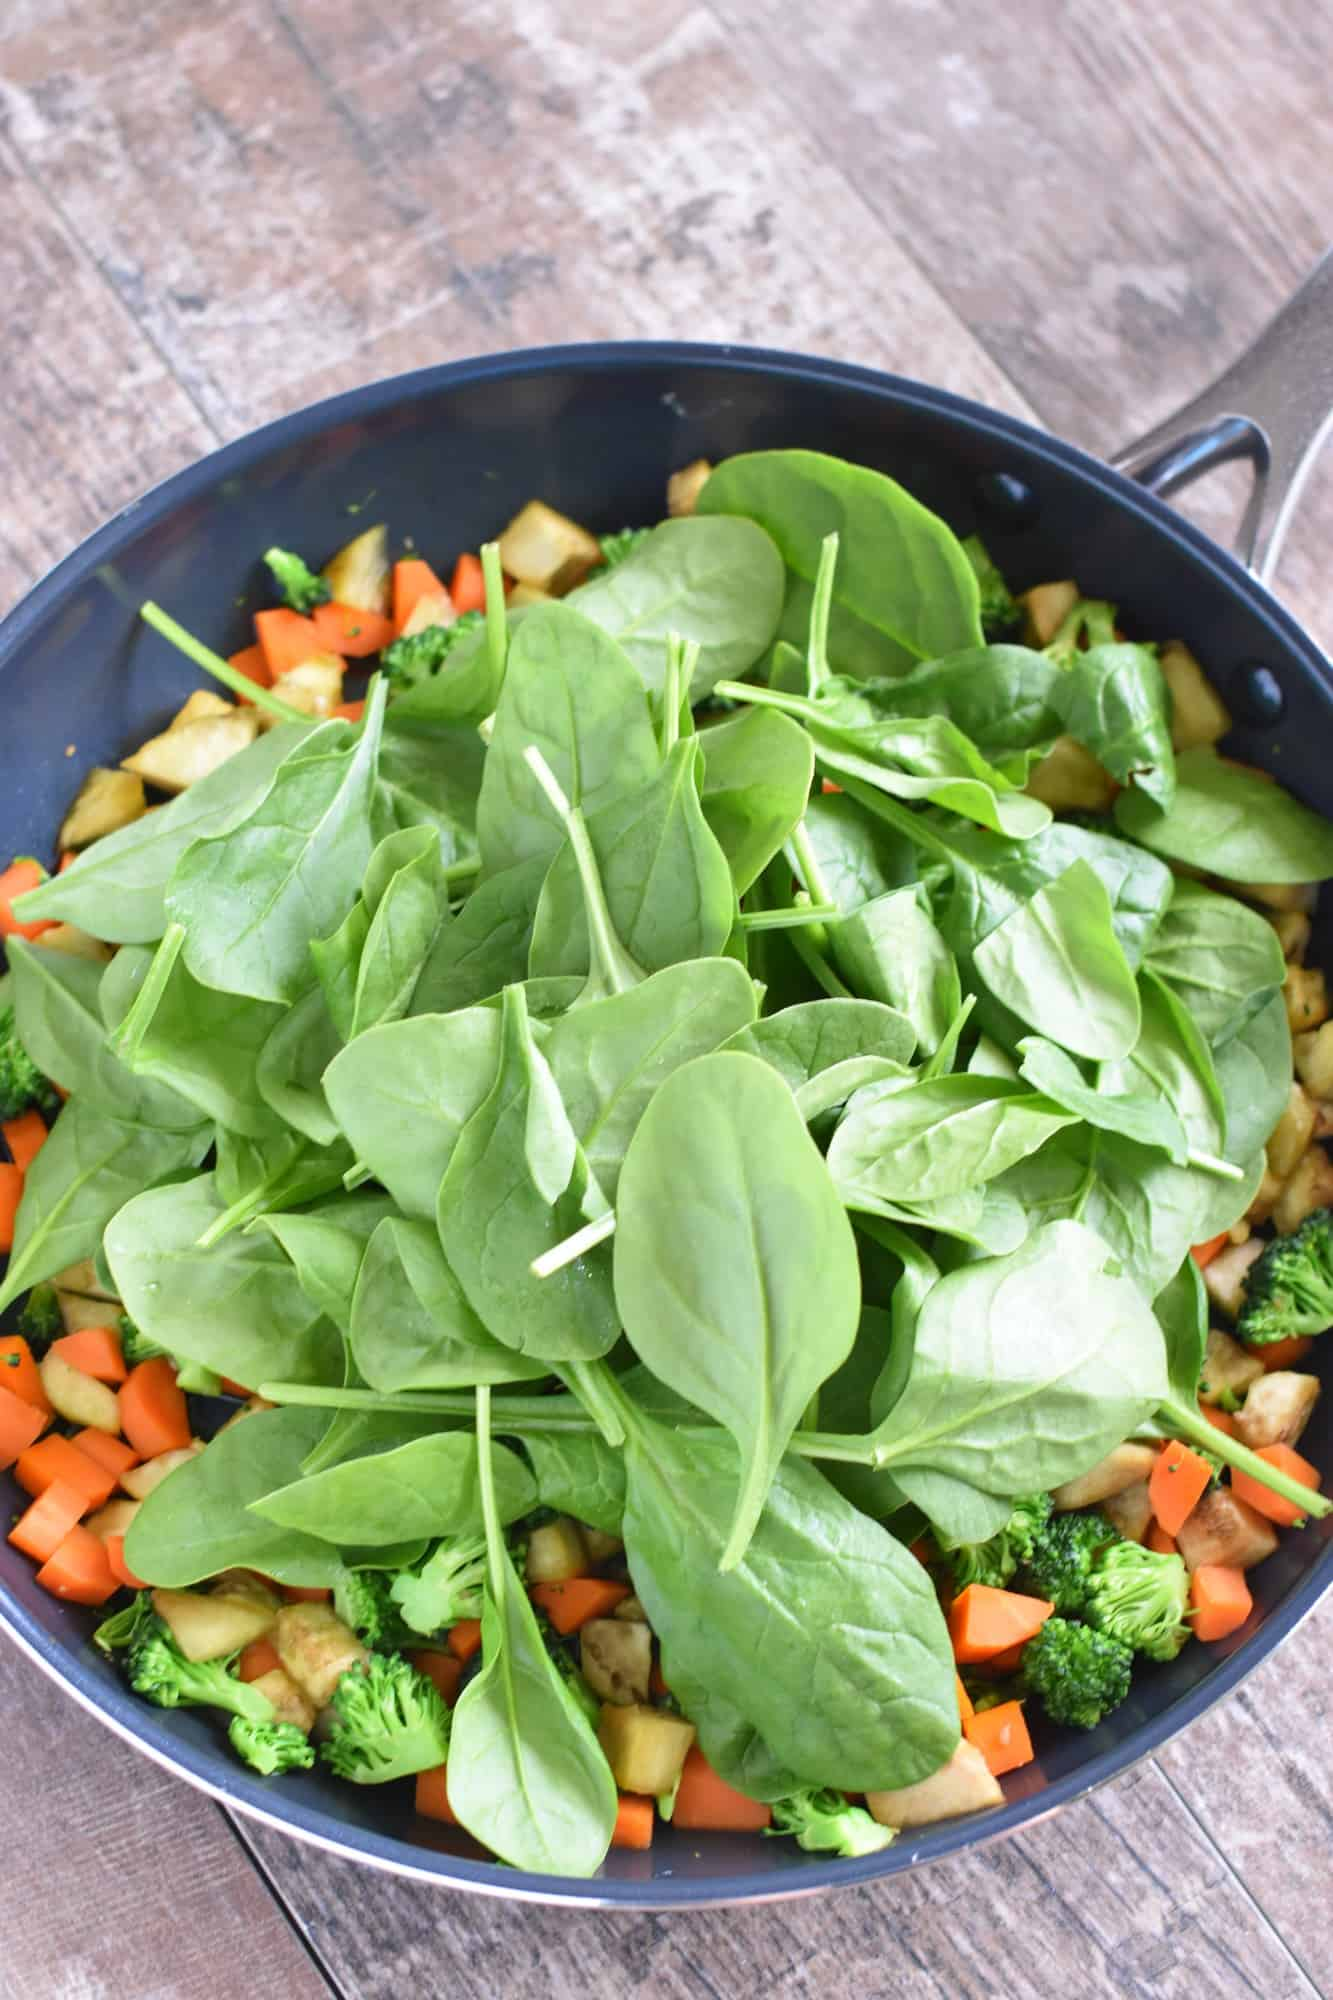 spinach added to the veggie mixture in the skillet